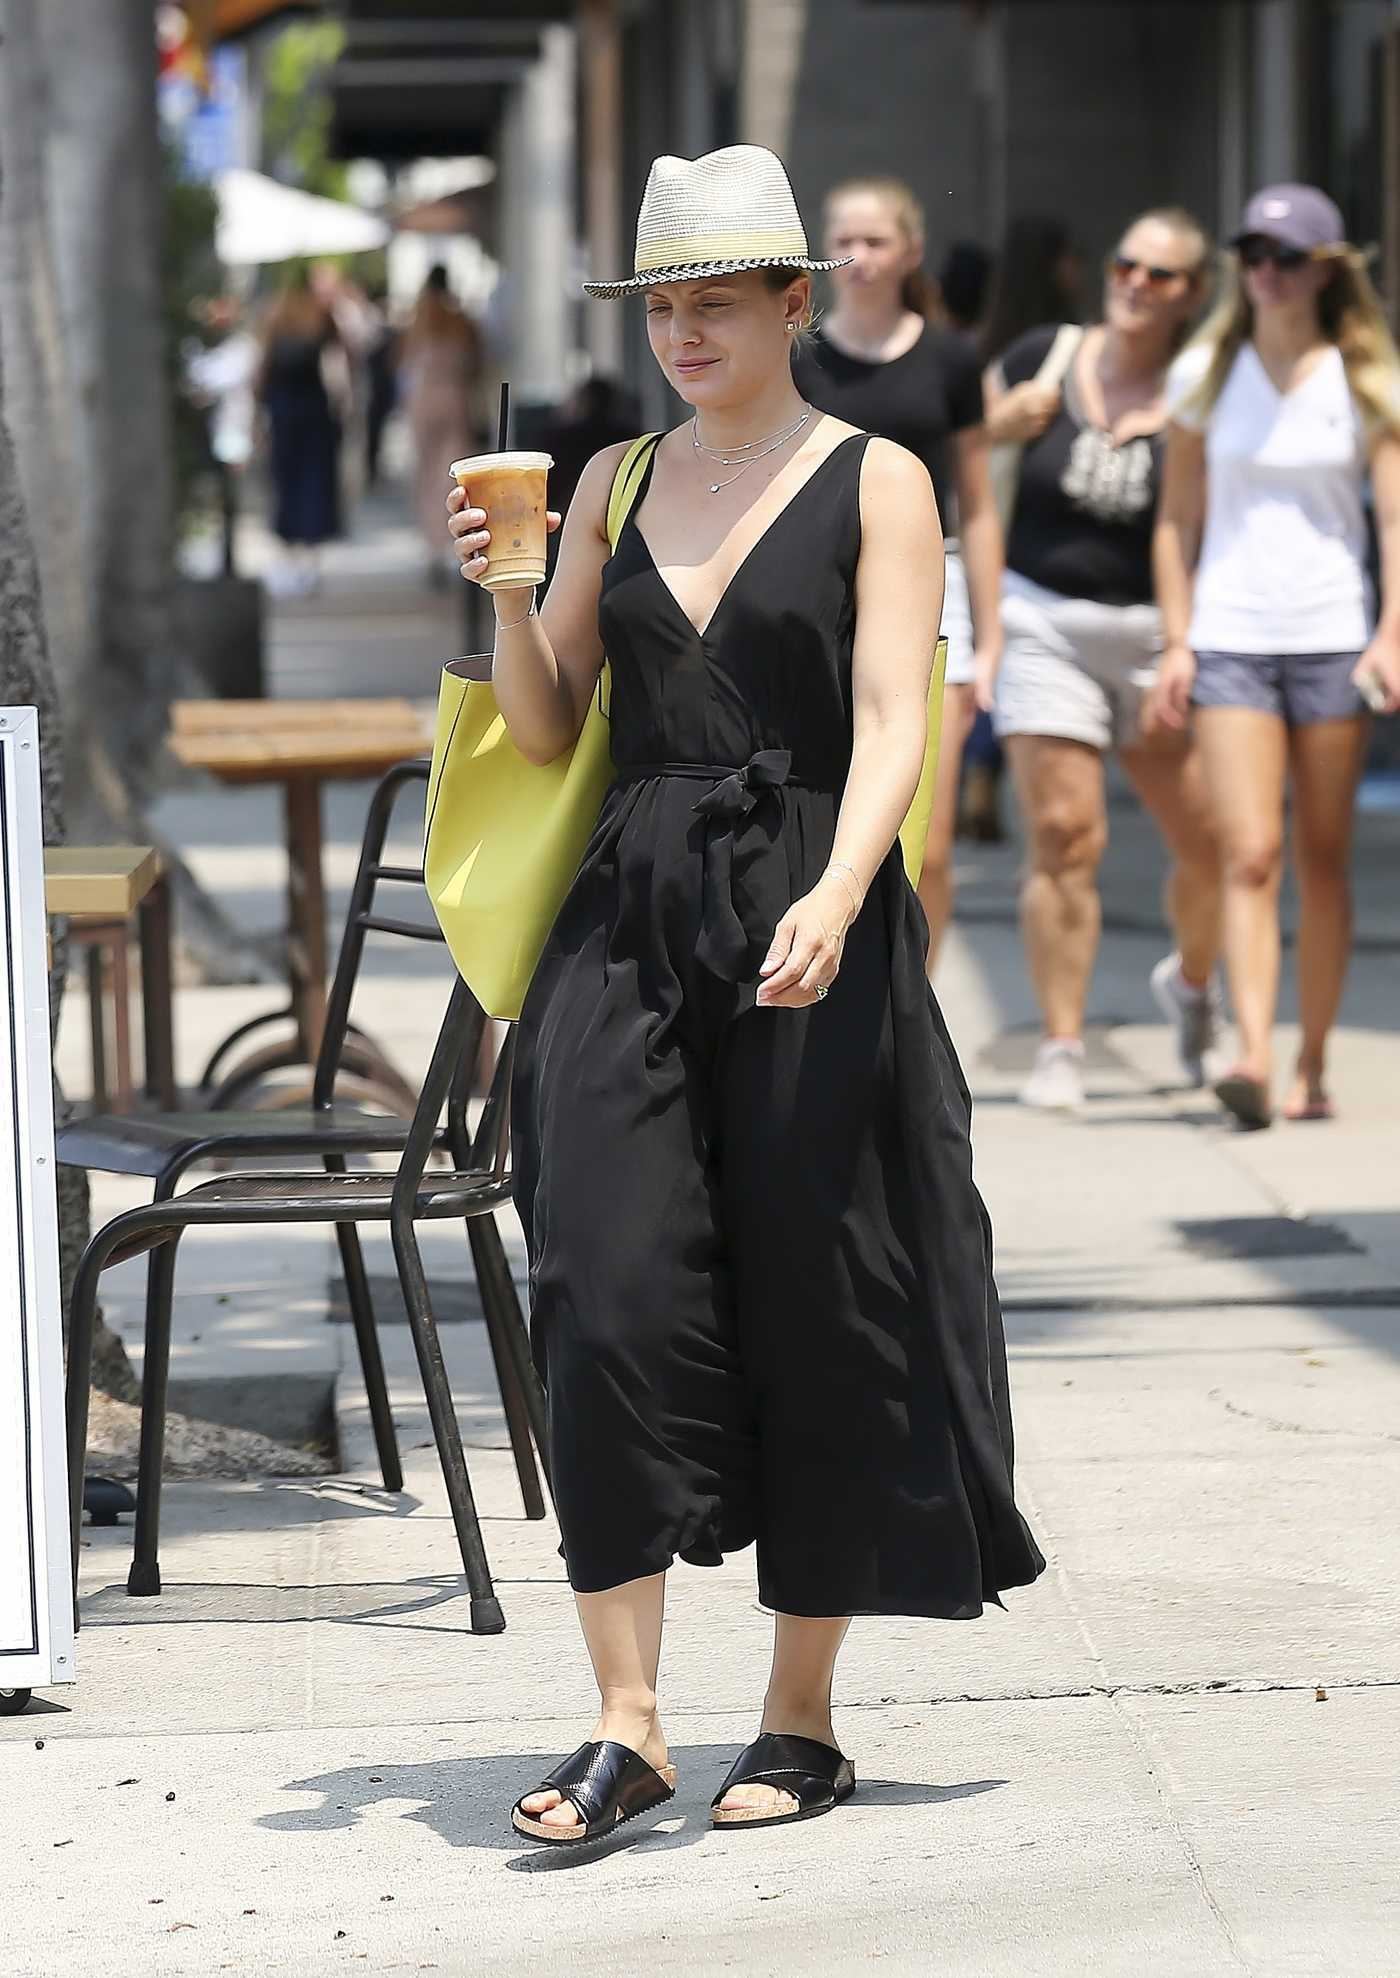 Mena Suvari in a Black Dress Was Seen Out in Los Angeles 08/10/2018